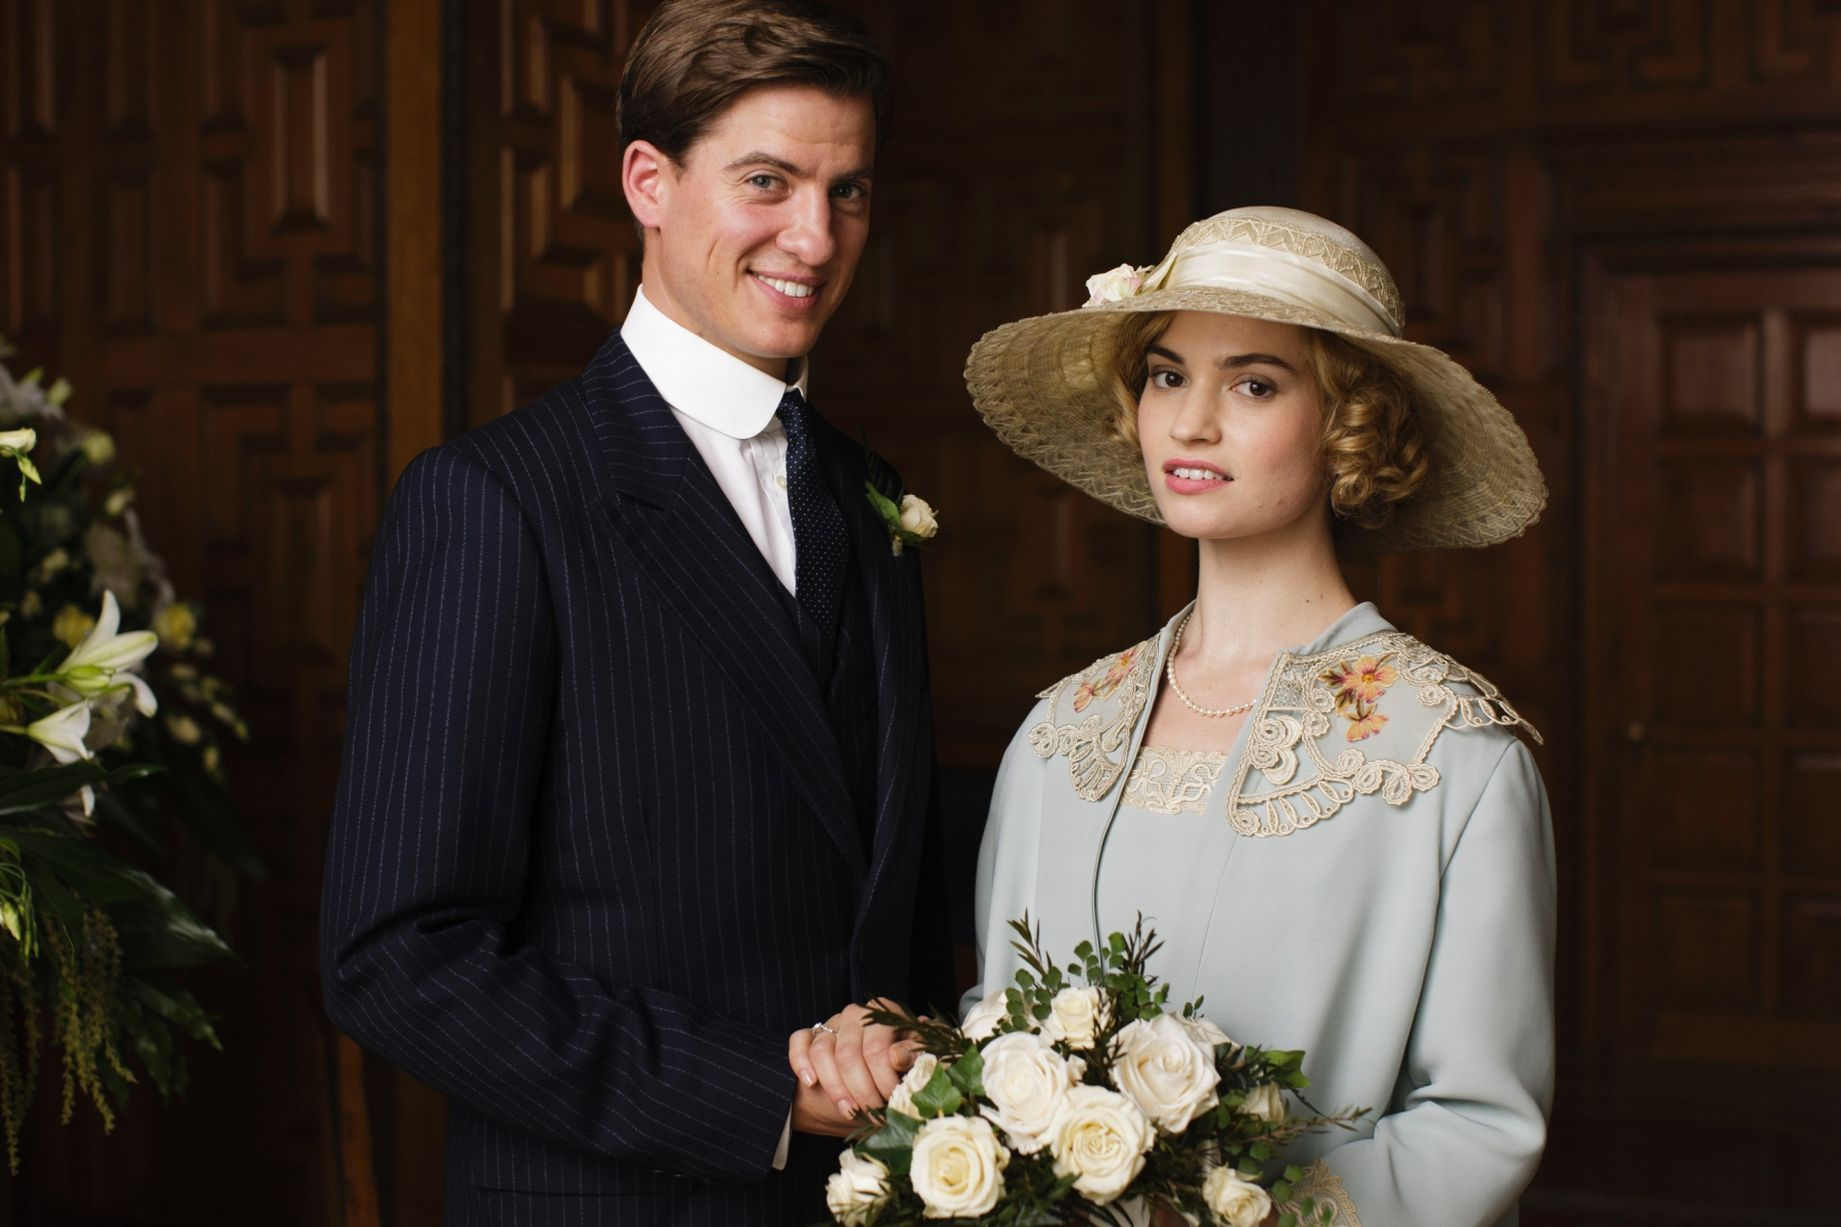 Downton Abbey spoilers: First look at Lady Rose's wedding